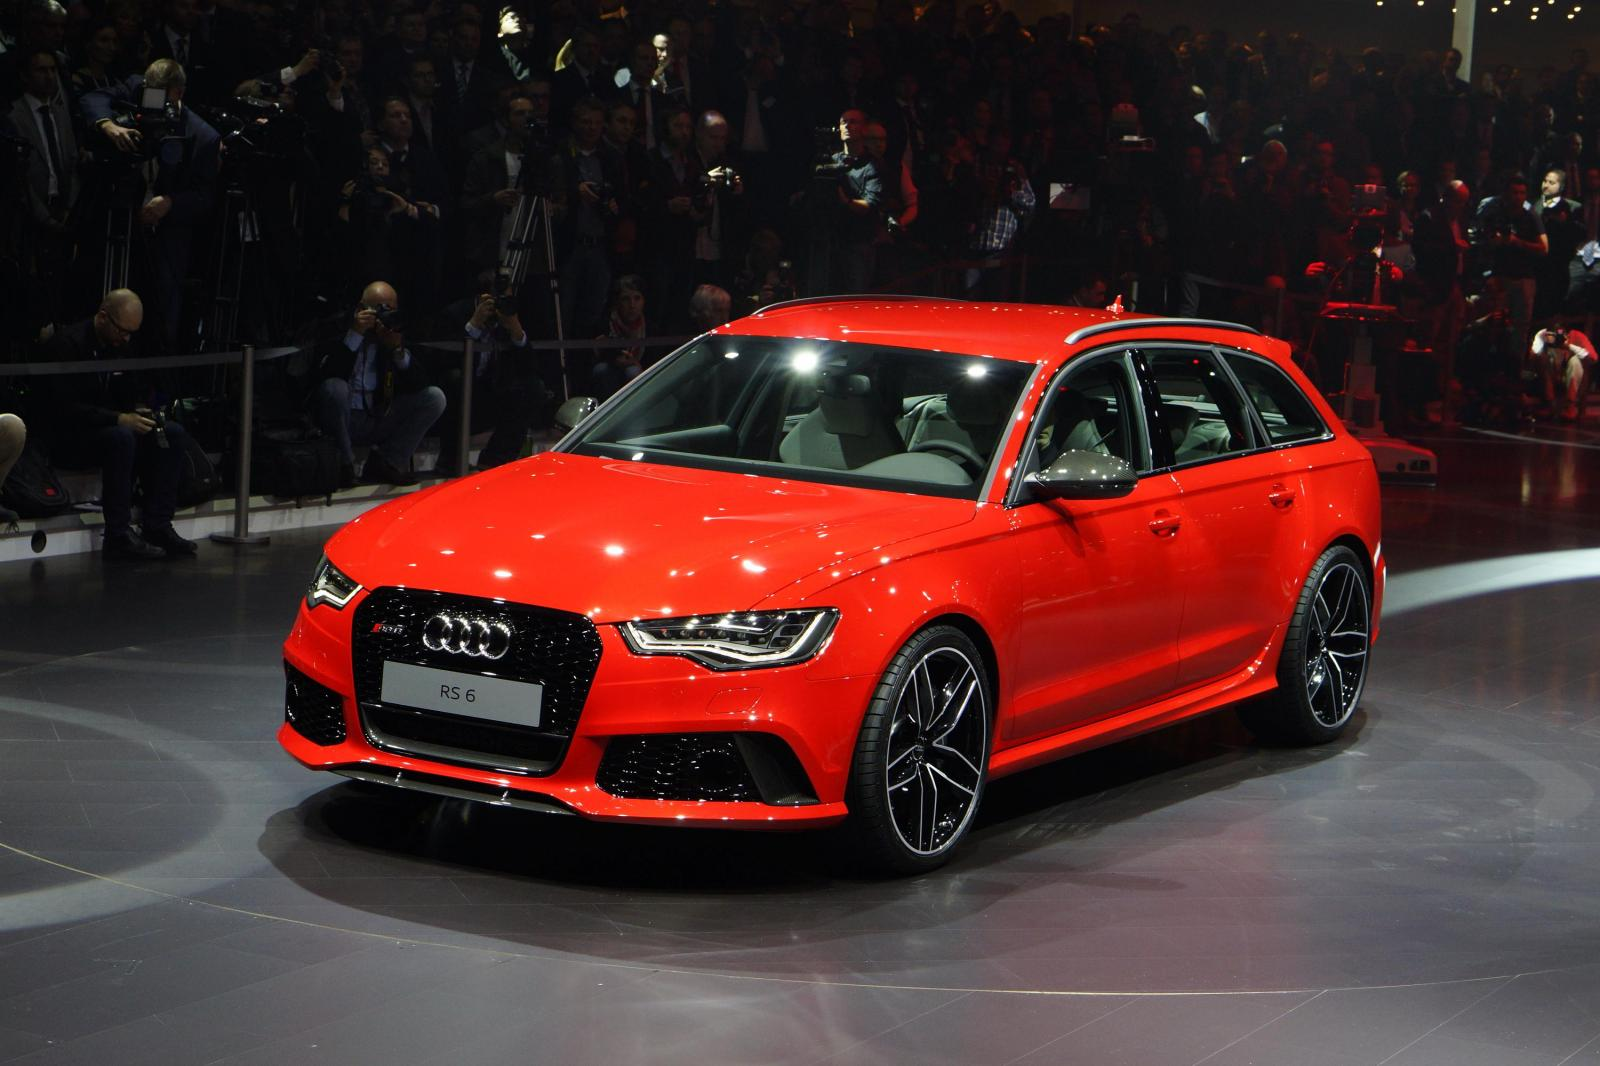 2014 audi rs6 avant at geneva gallery. Black Bedroom Furniture Sets. Home Design Ideas